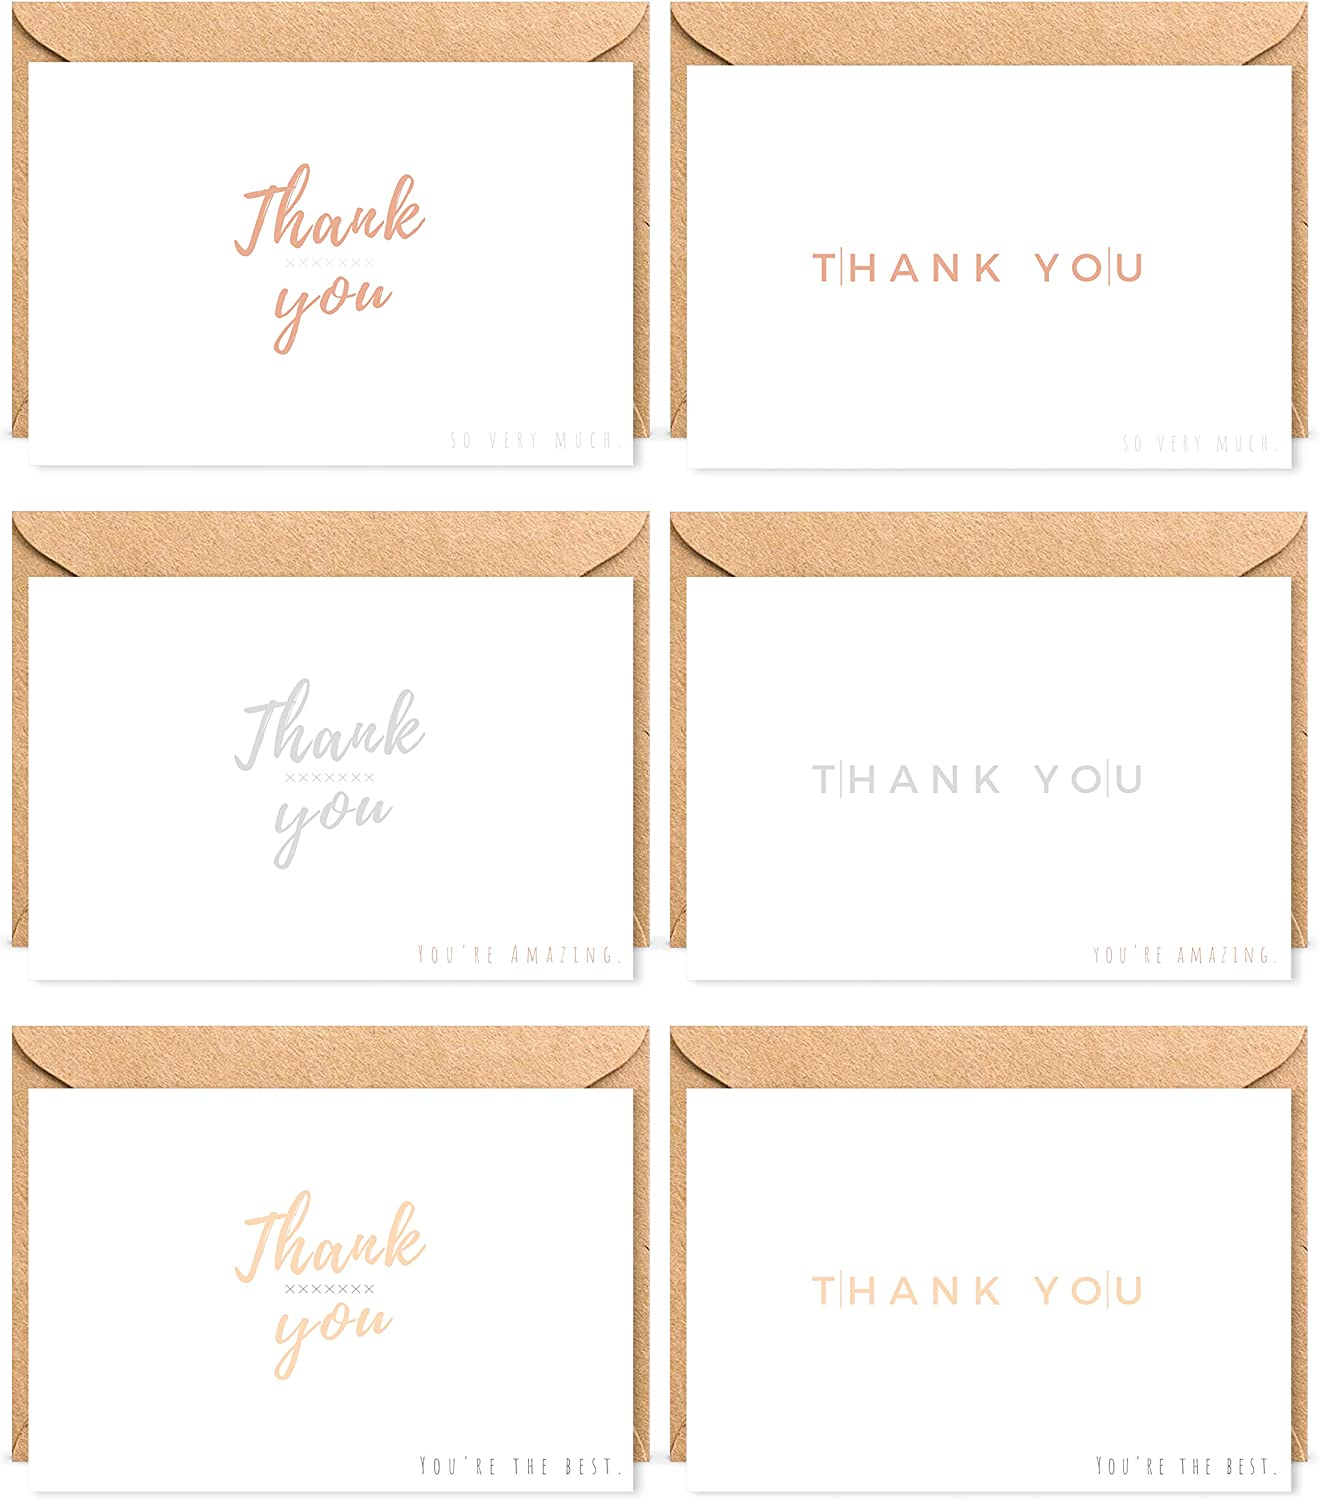 Baby /& Bridal Shower Engagement Holiday Kraft Envelopes /& Stickers Perfect for Business Minimalist Style 60 Note Cards Funeral Wedding Photo Graduation Thank You Cards by THE BOHO LIFE